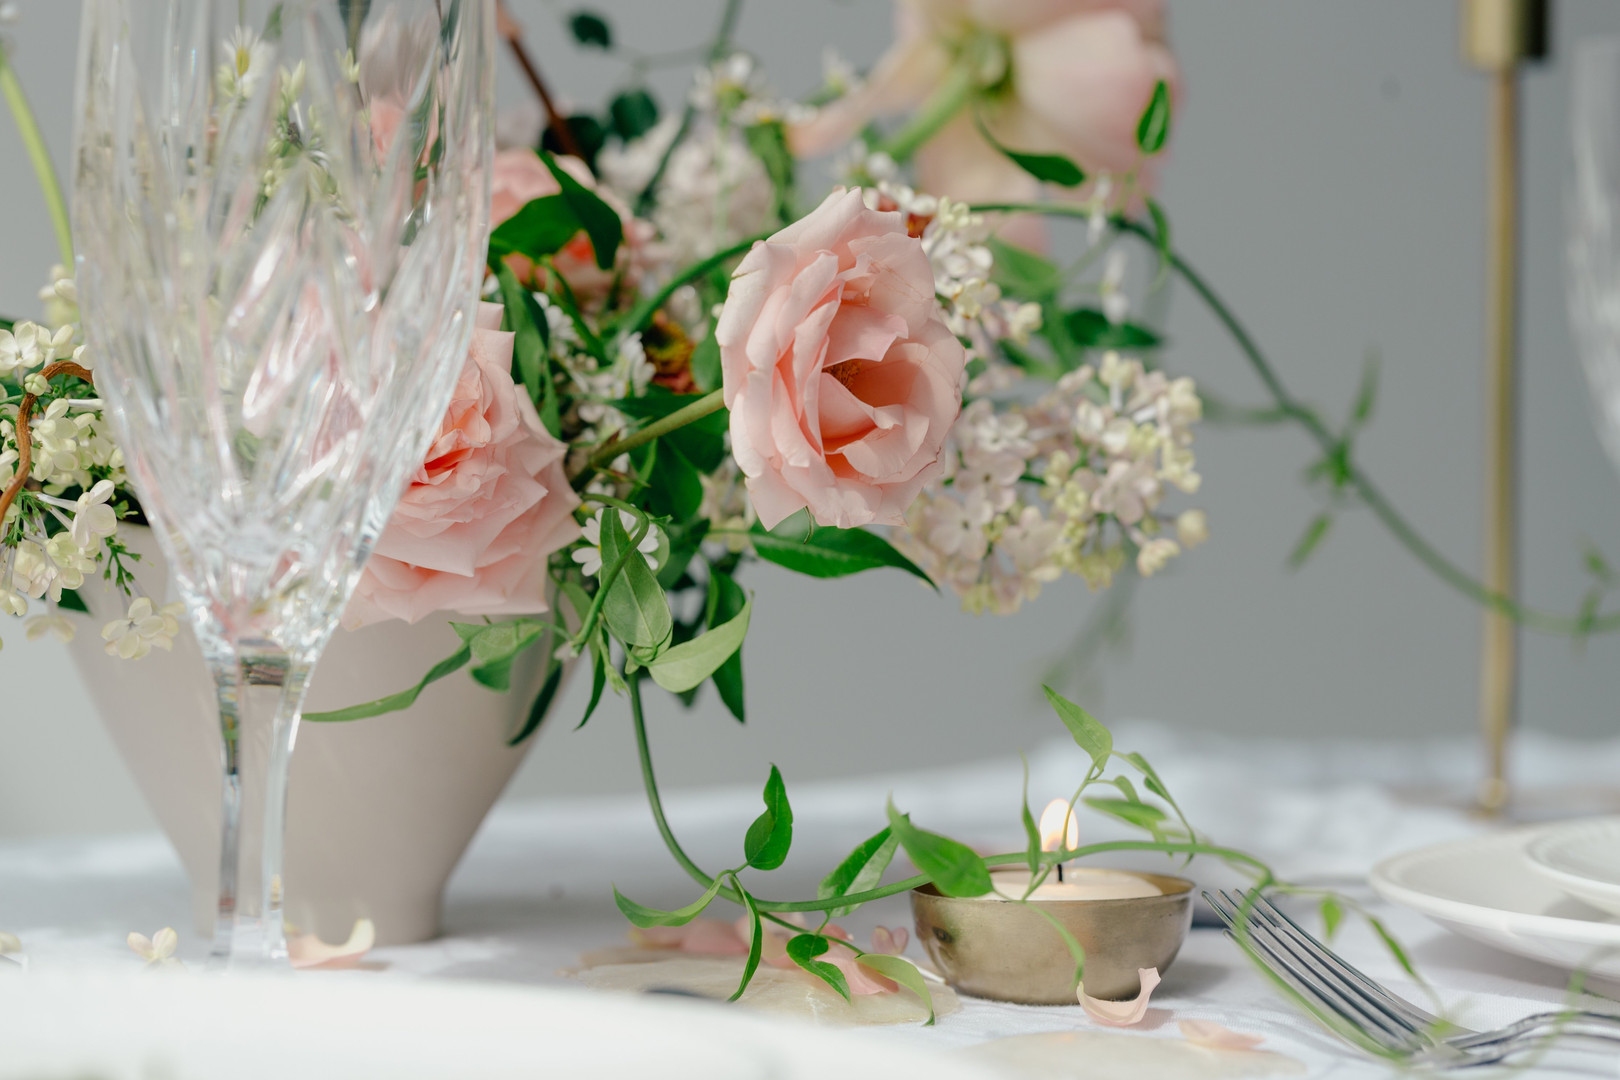 peach-roses-on-table-with-glass.jpg